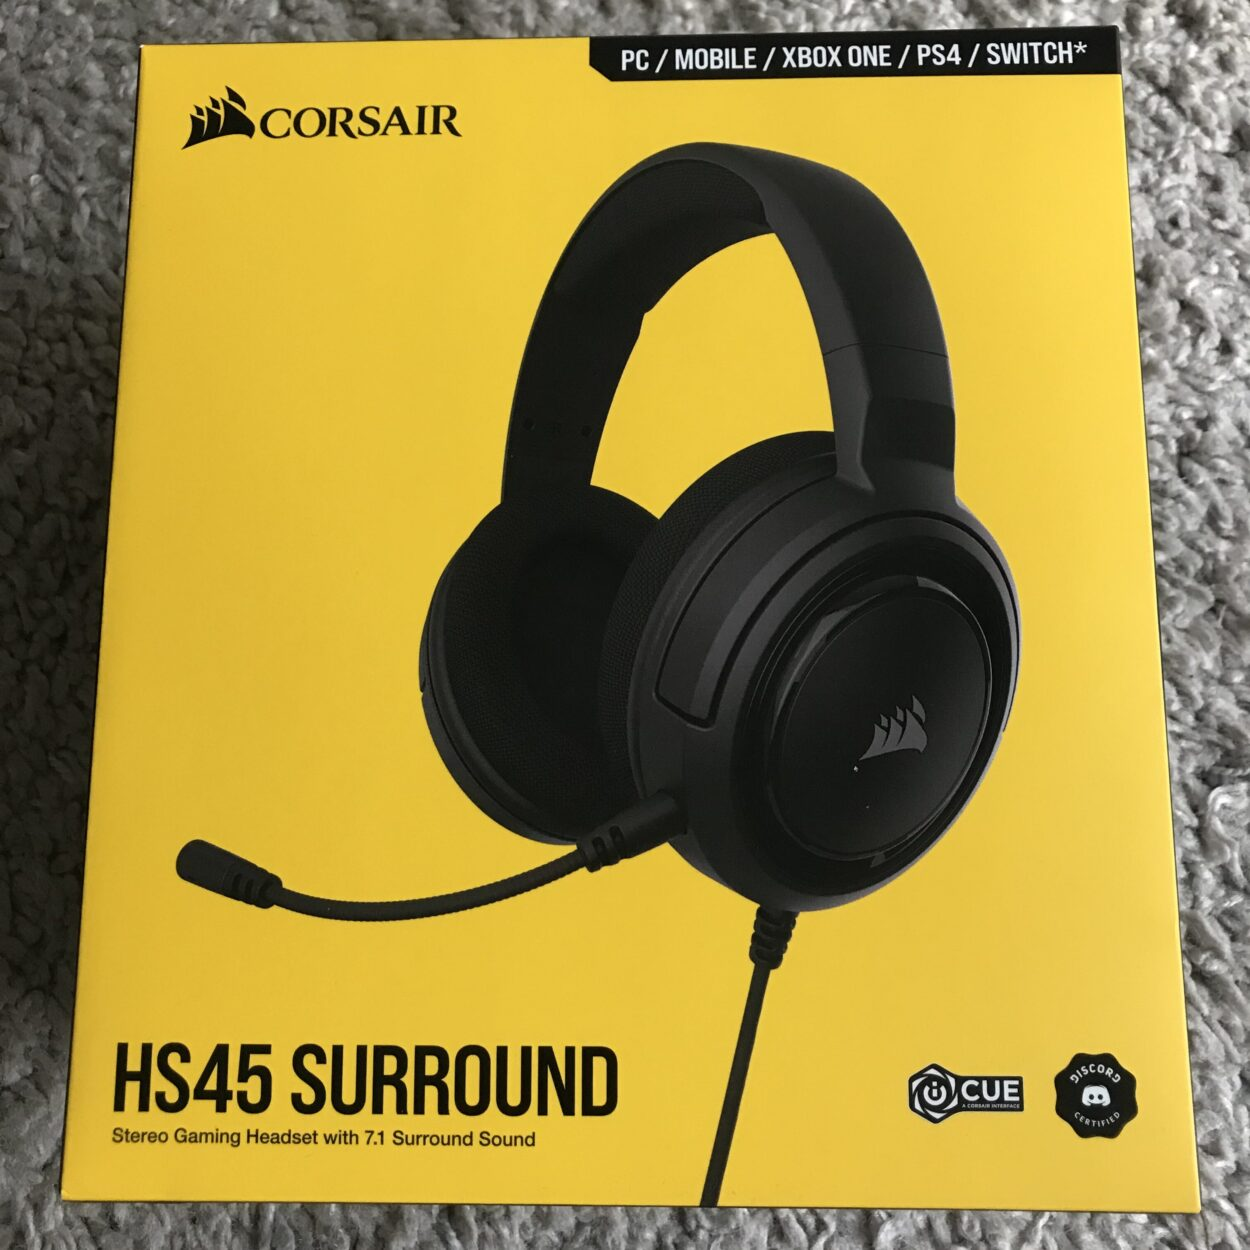 Corsair HS 45 packaging